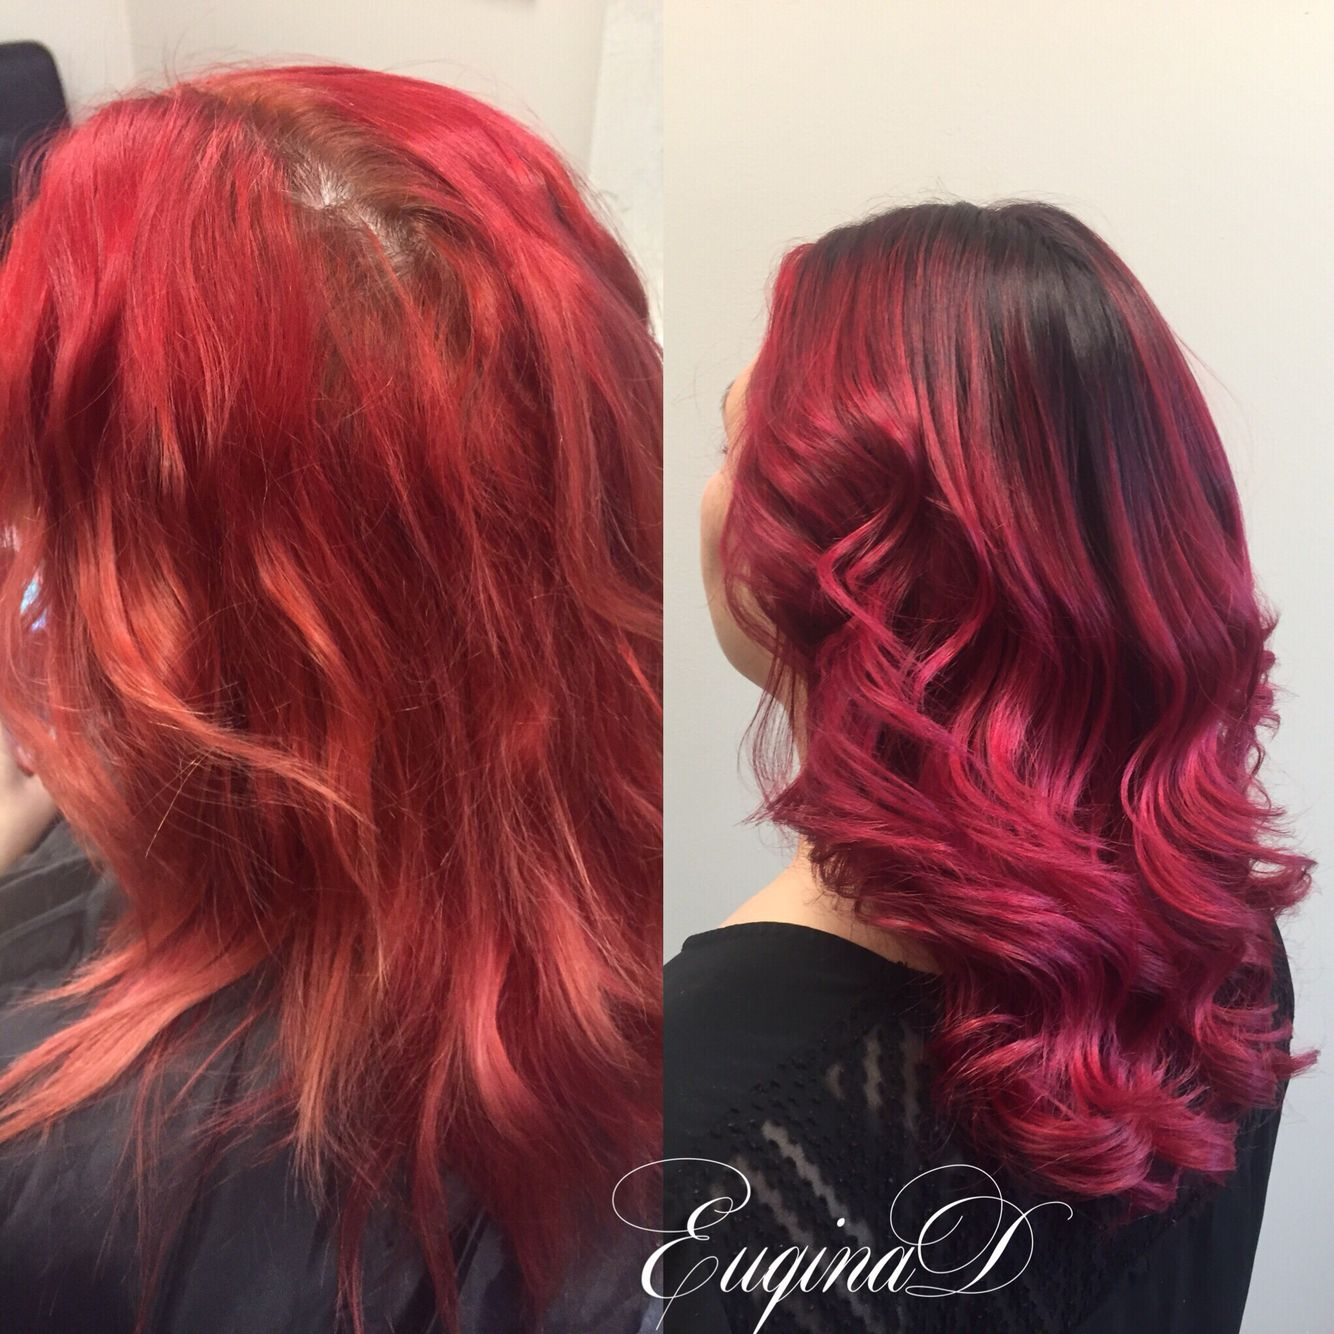 Faded Red Hot Roots To Balayage Ombre Deep Violet Faded To Vibrant Red Balayage Aveda Color Red Balayage